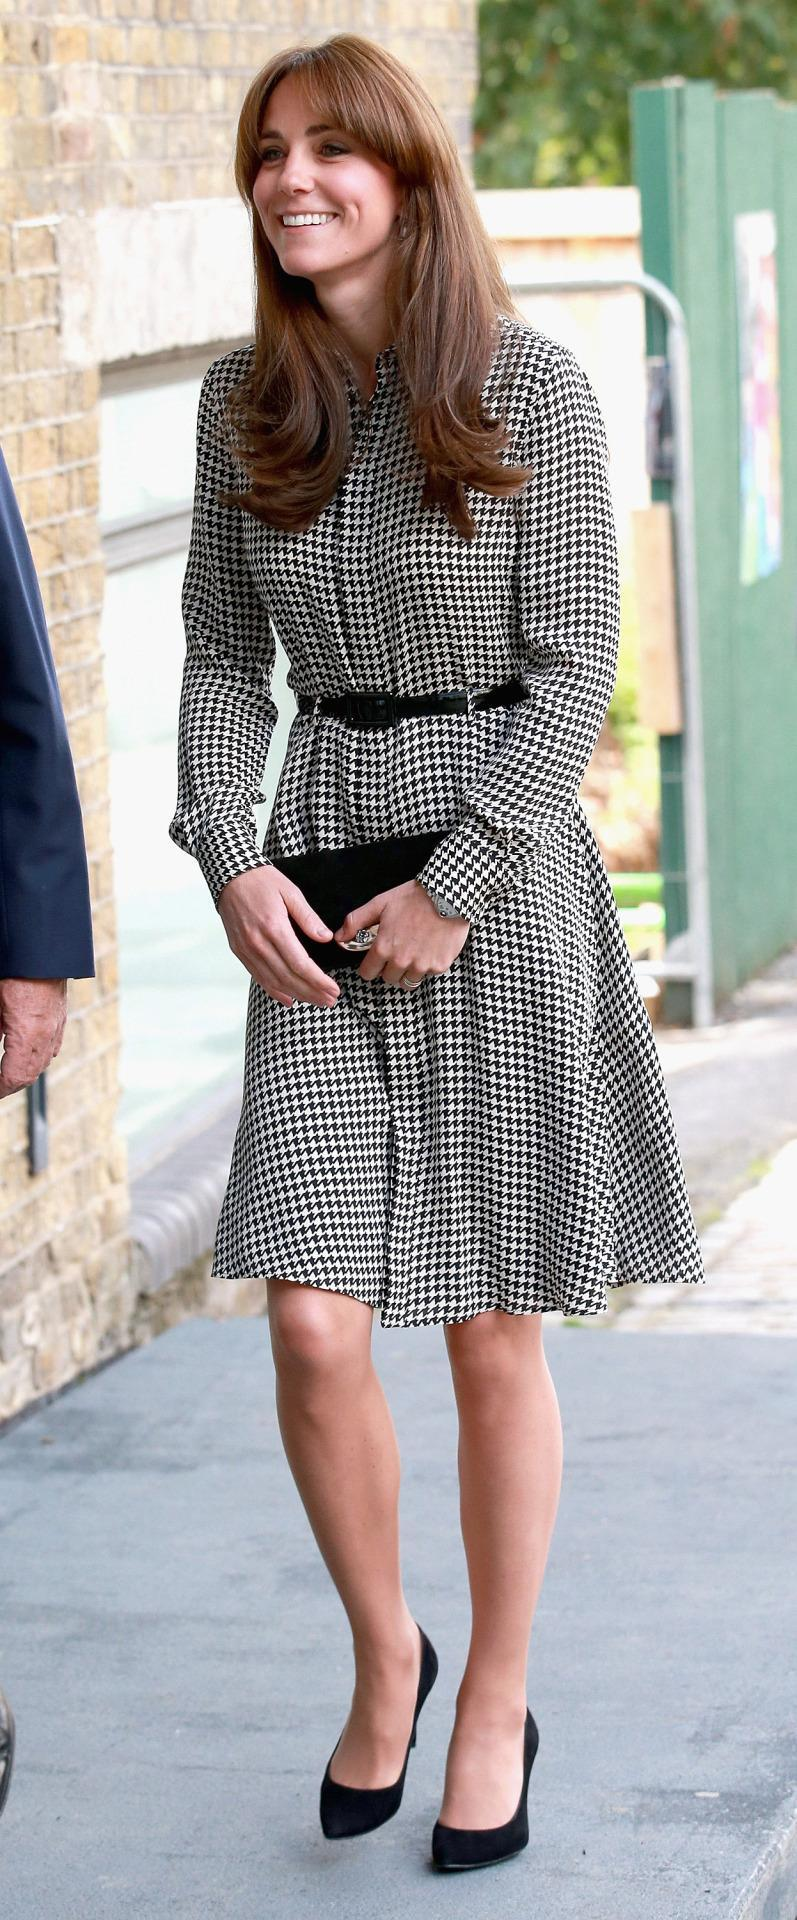 <p>Kate donned a houndstooth Ralph Lauren shirtdress for her first charity engagement after giving birth to Princess Charlotte. She accessorised with Stuart Weitzman pumps and a black Mulberry clutch. </p><p><i>[Photo: PA]</i></p>